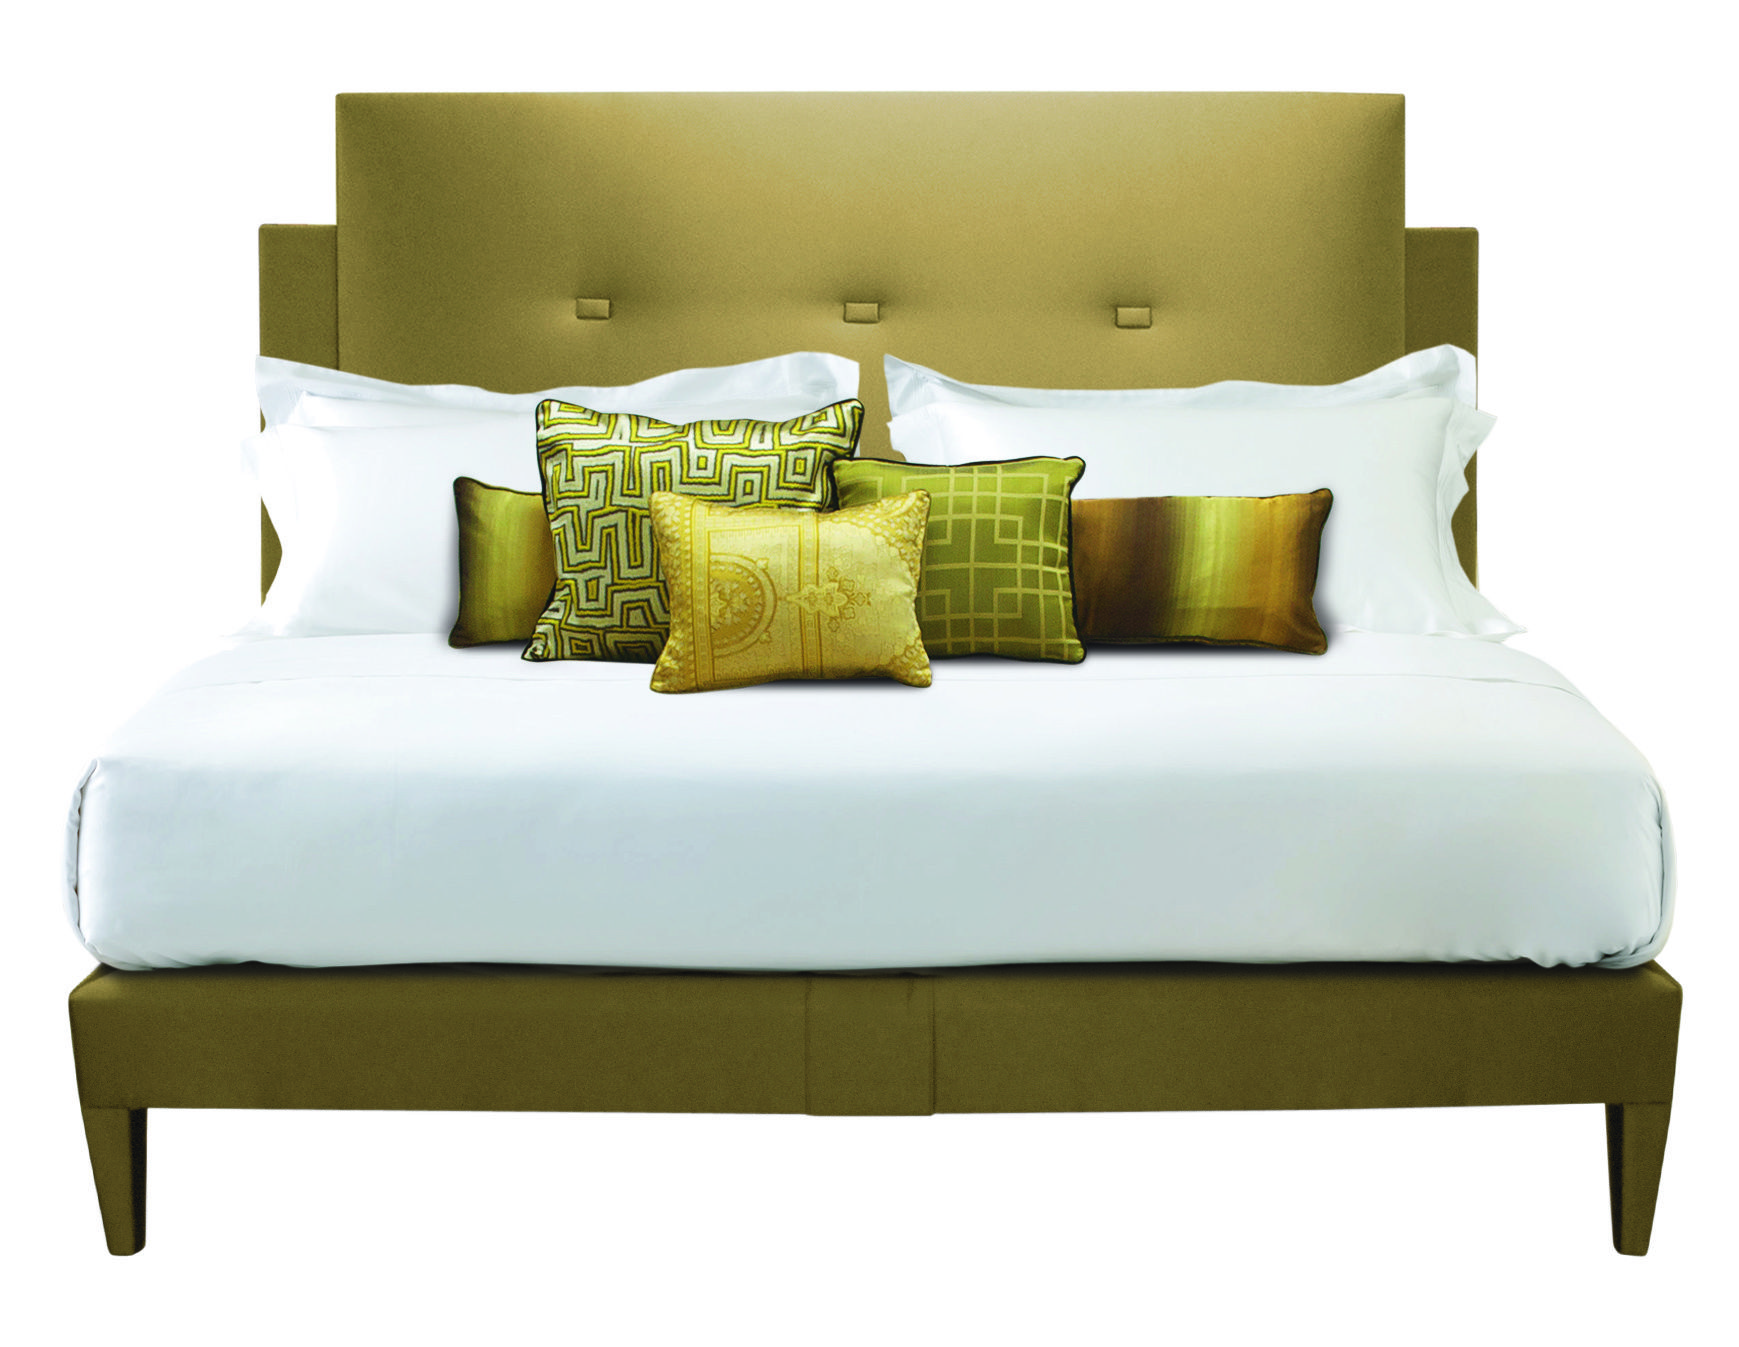 Buy Savoy Bed From Savoir Beds By Decorex International 2014